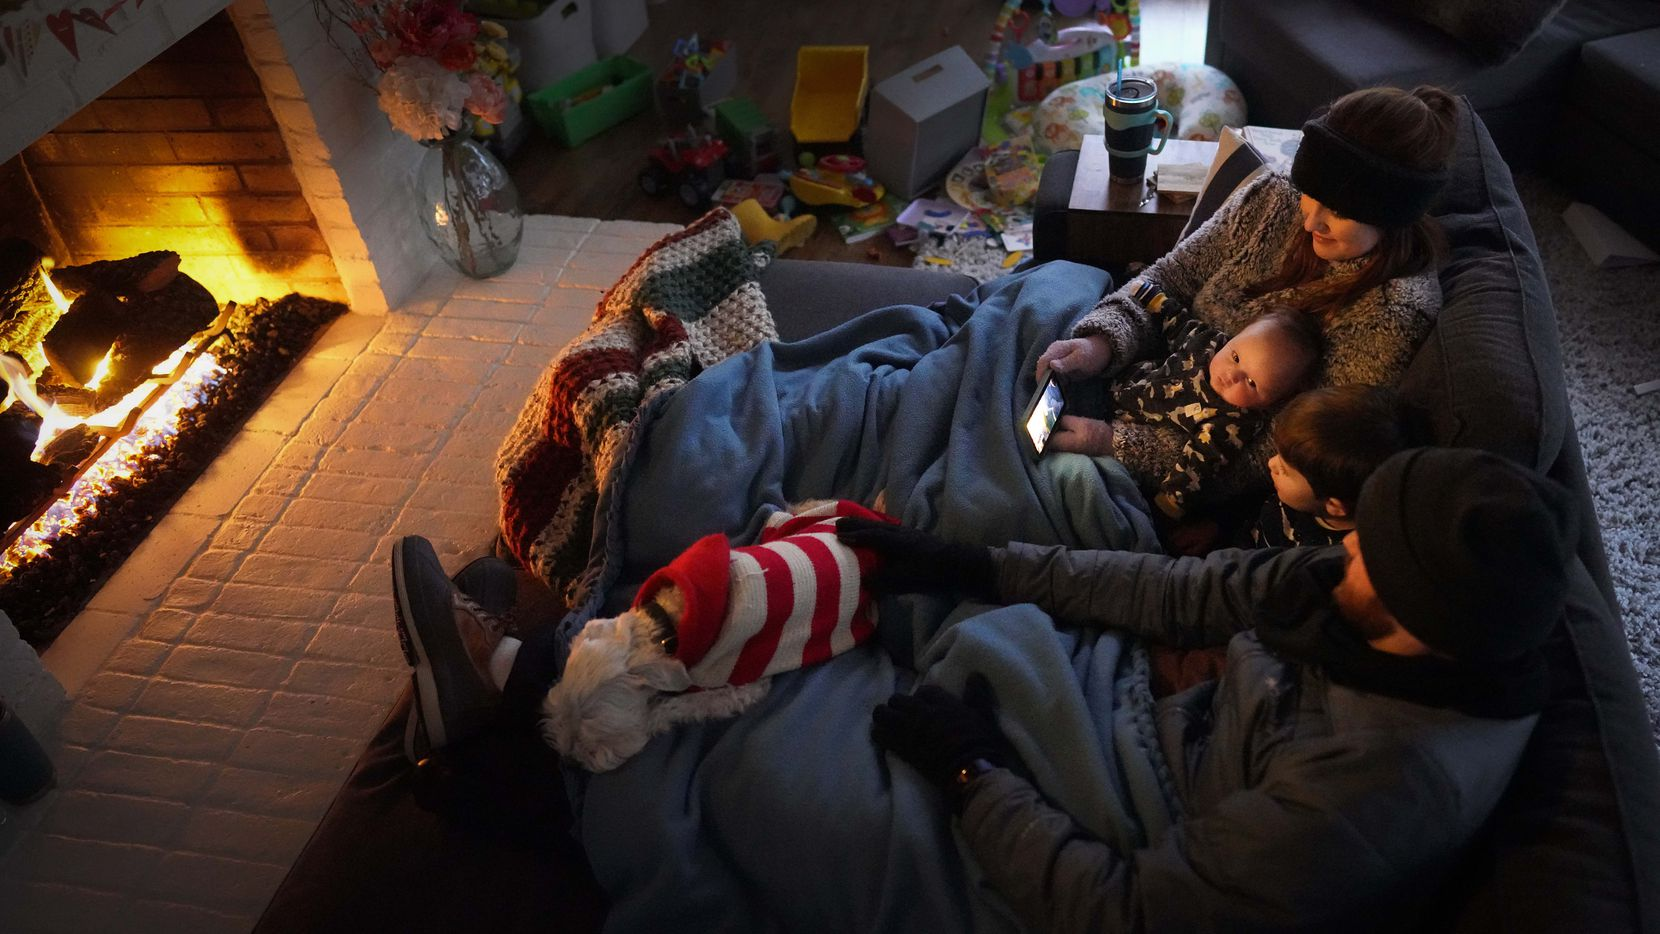 Dan Bryant and his wife Anna huddle by the fire with sons Benny, 3, and Sam, 12 weeks, along with their dog Joey, also wearing two doggie sweaters, with power out and temperatures dropping inside their home after a winter storm brought snow and freezing temperatures to North Texas on Monday.